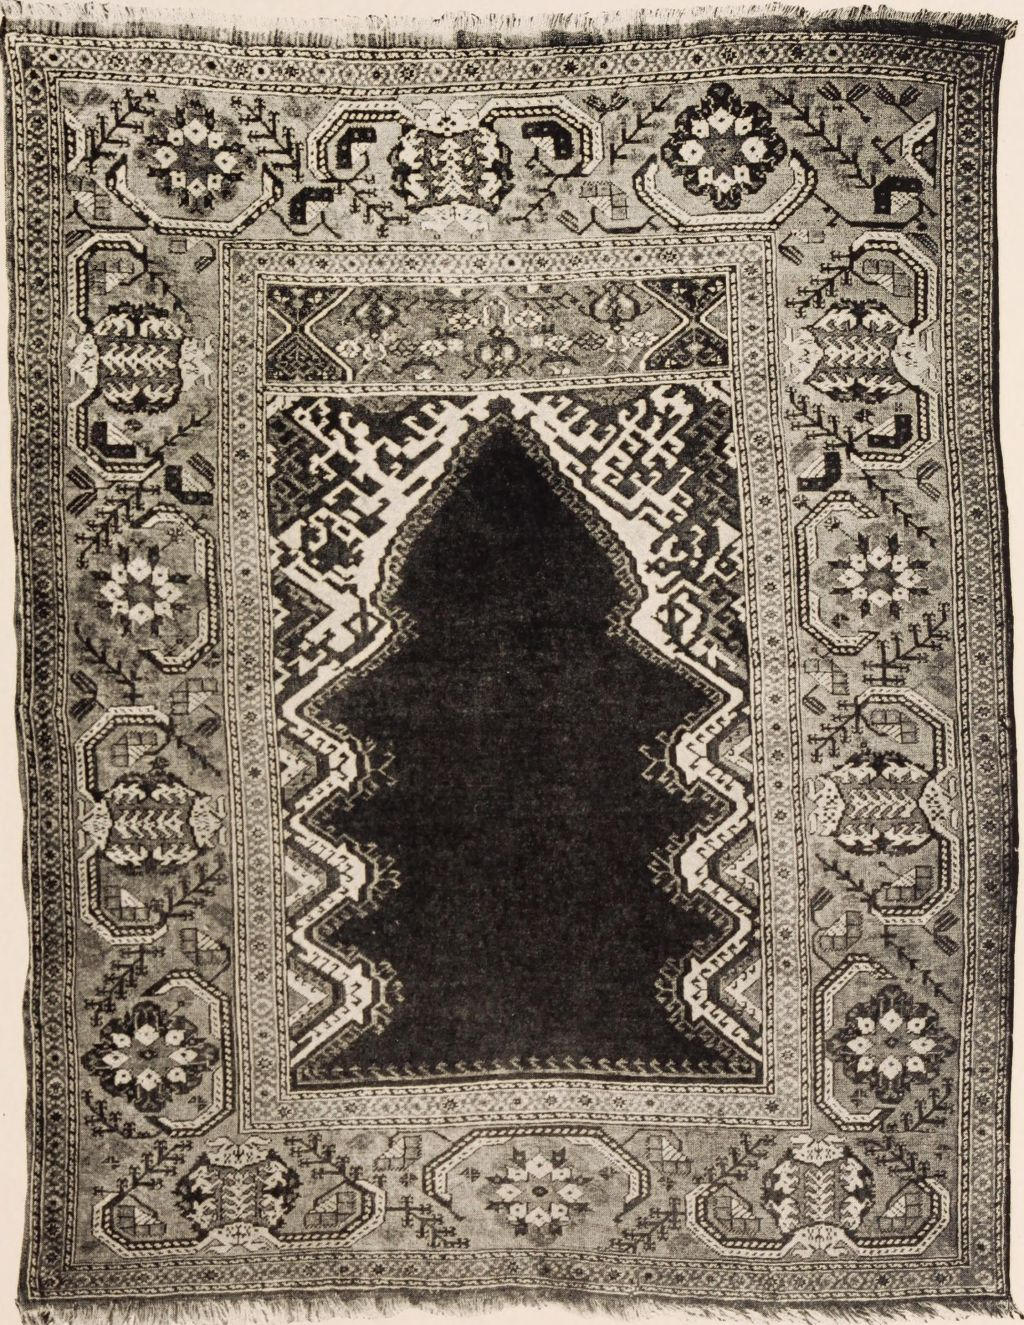 17th-century prayer rug, Turkey. By American Art Association; Townsend, Horace, 1859-1922 [No restrictions], via Wikimedia Commons.